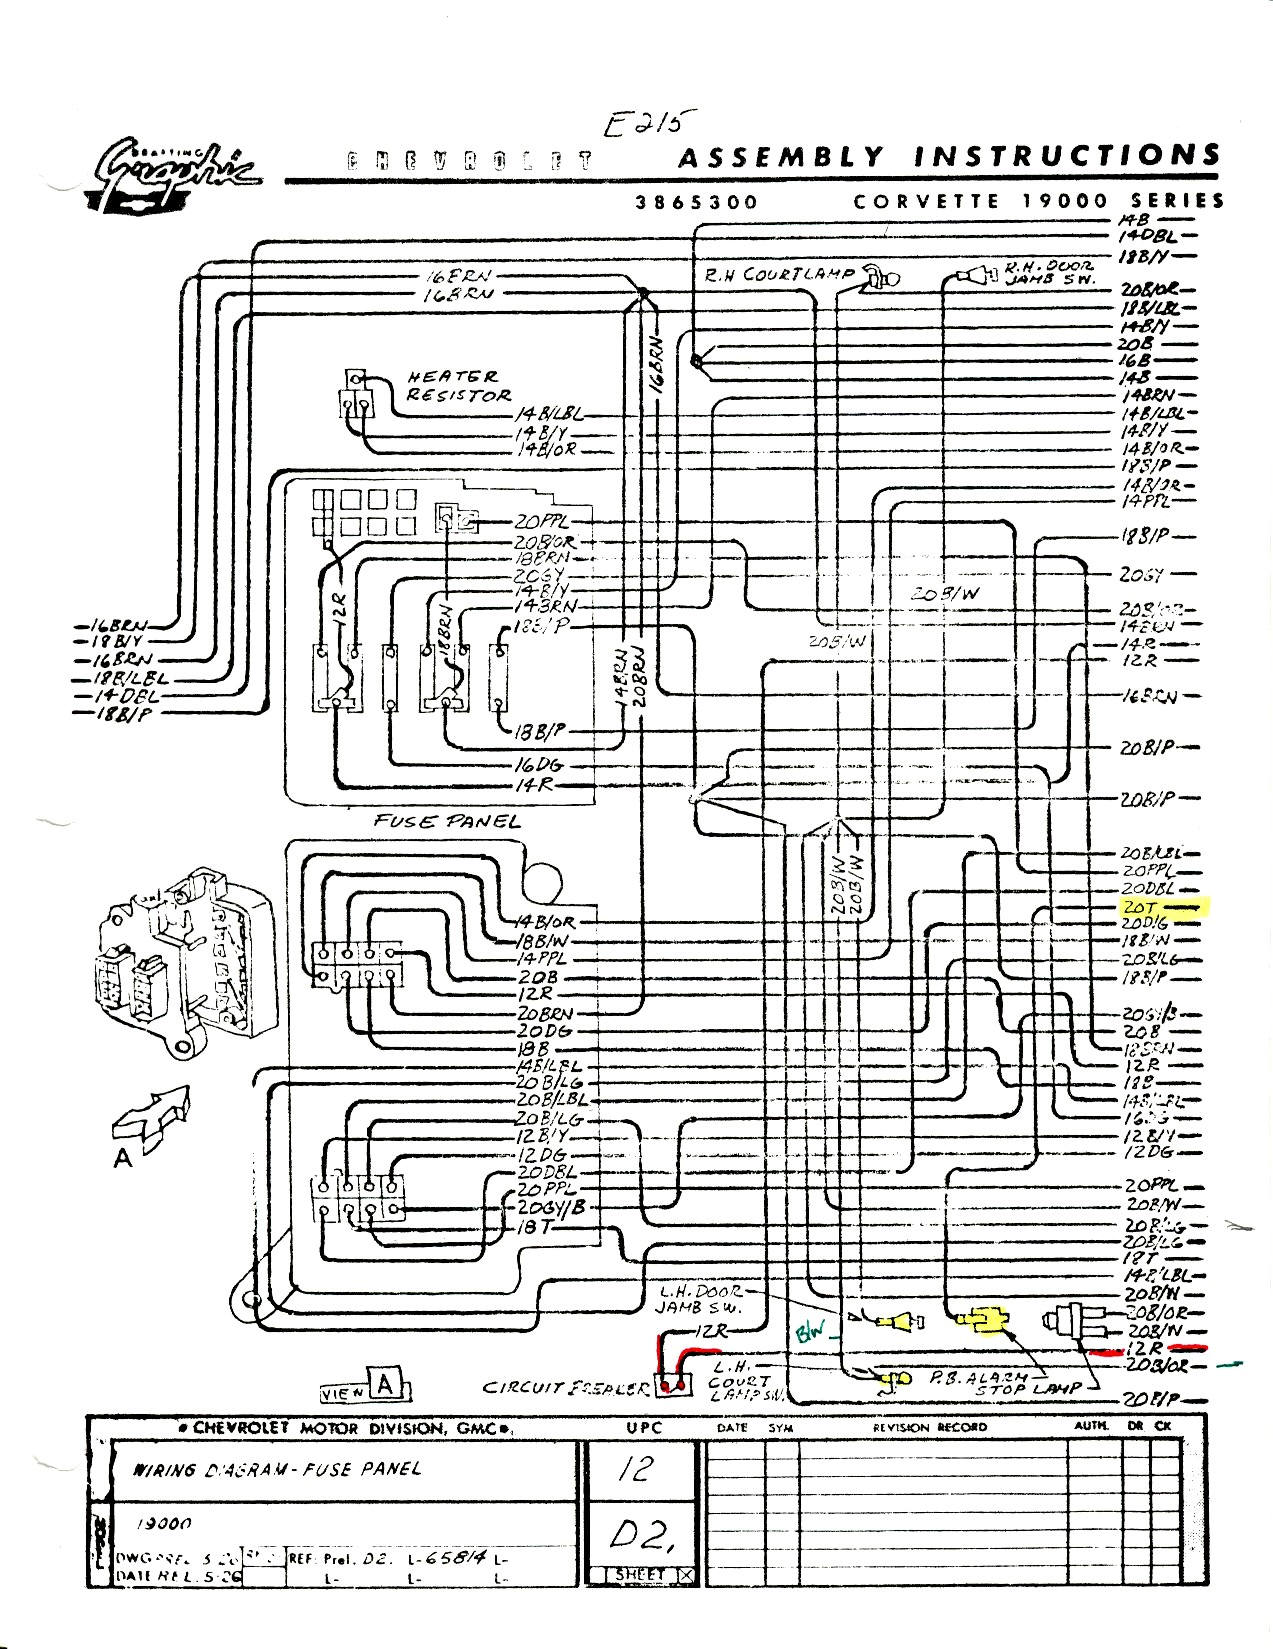 1976 corvette radio wiring diagram audio i need a 1965 corvetteforum chevrolet